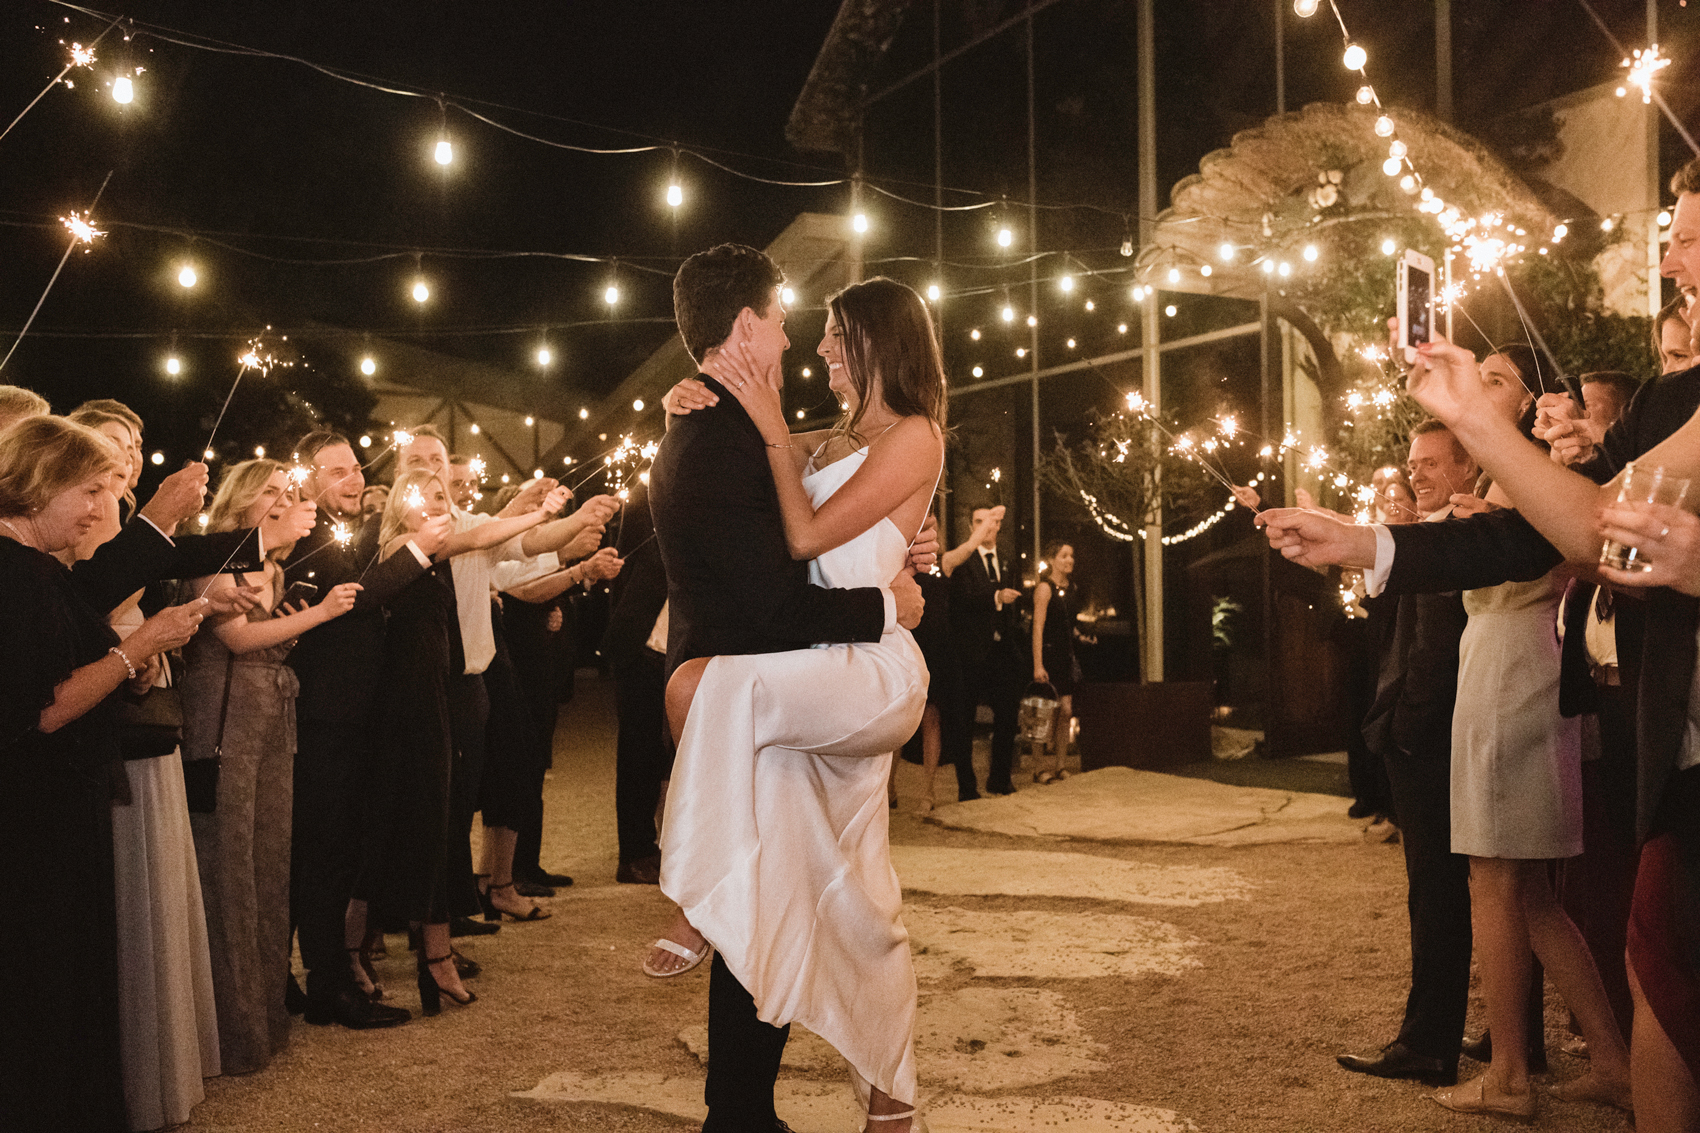 guests hold sparklers around bride and groom outside hotel